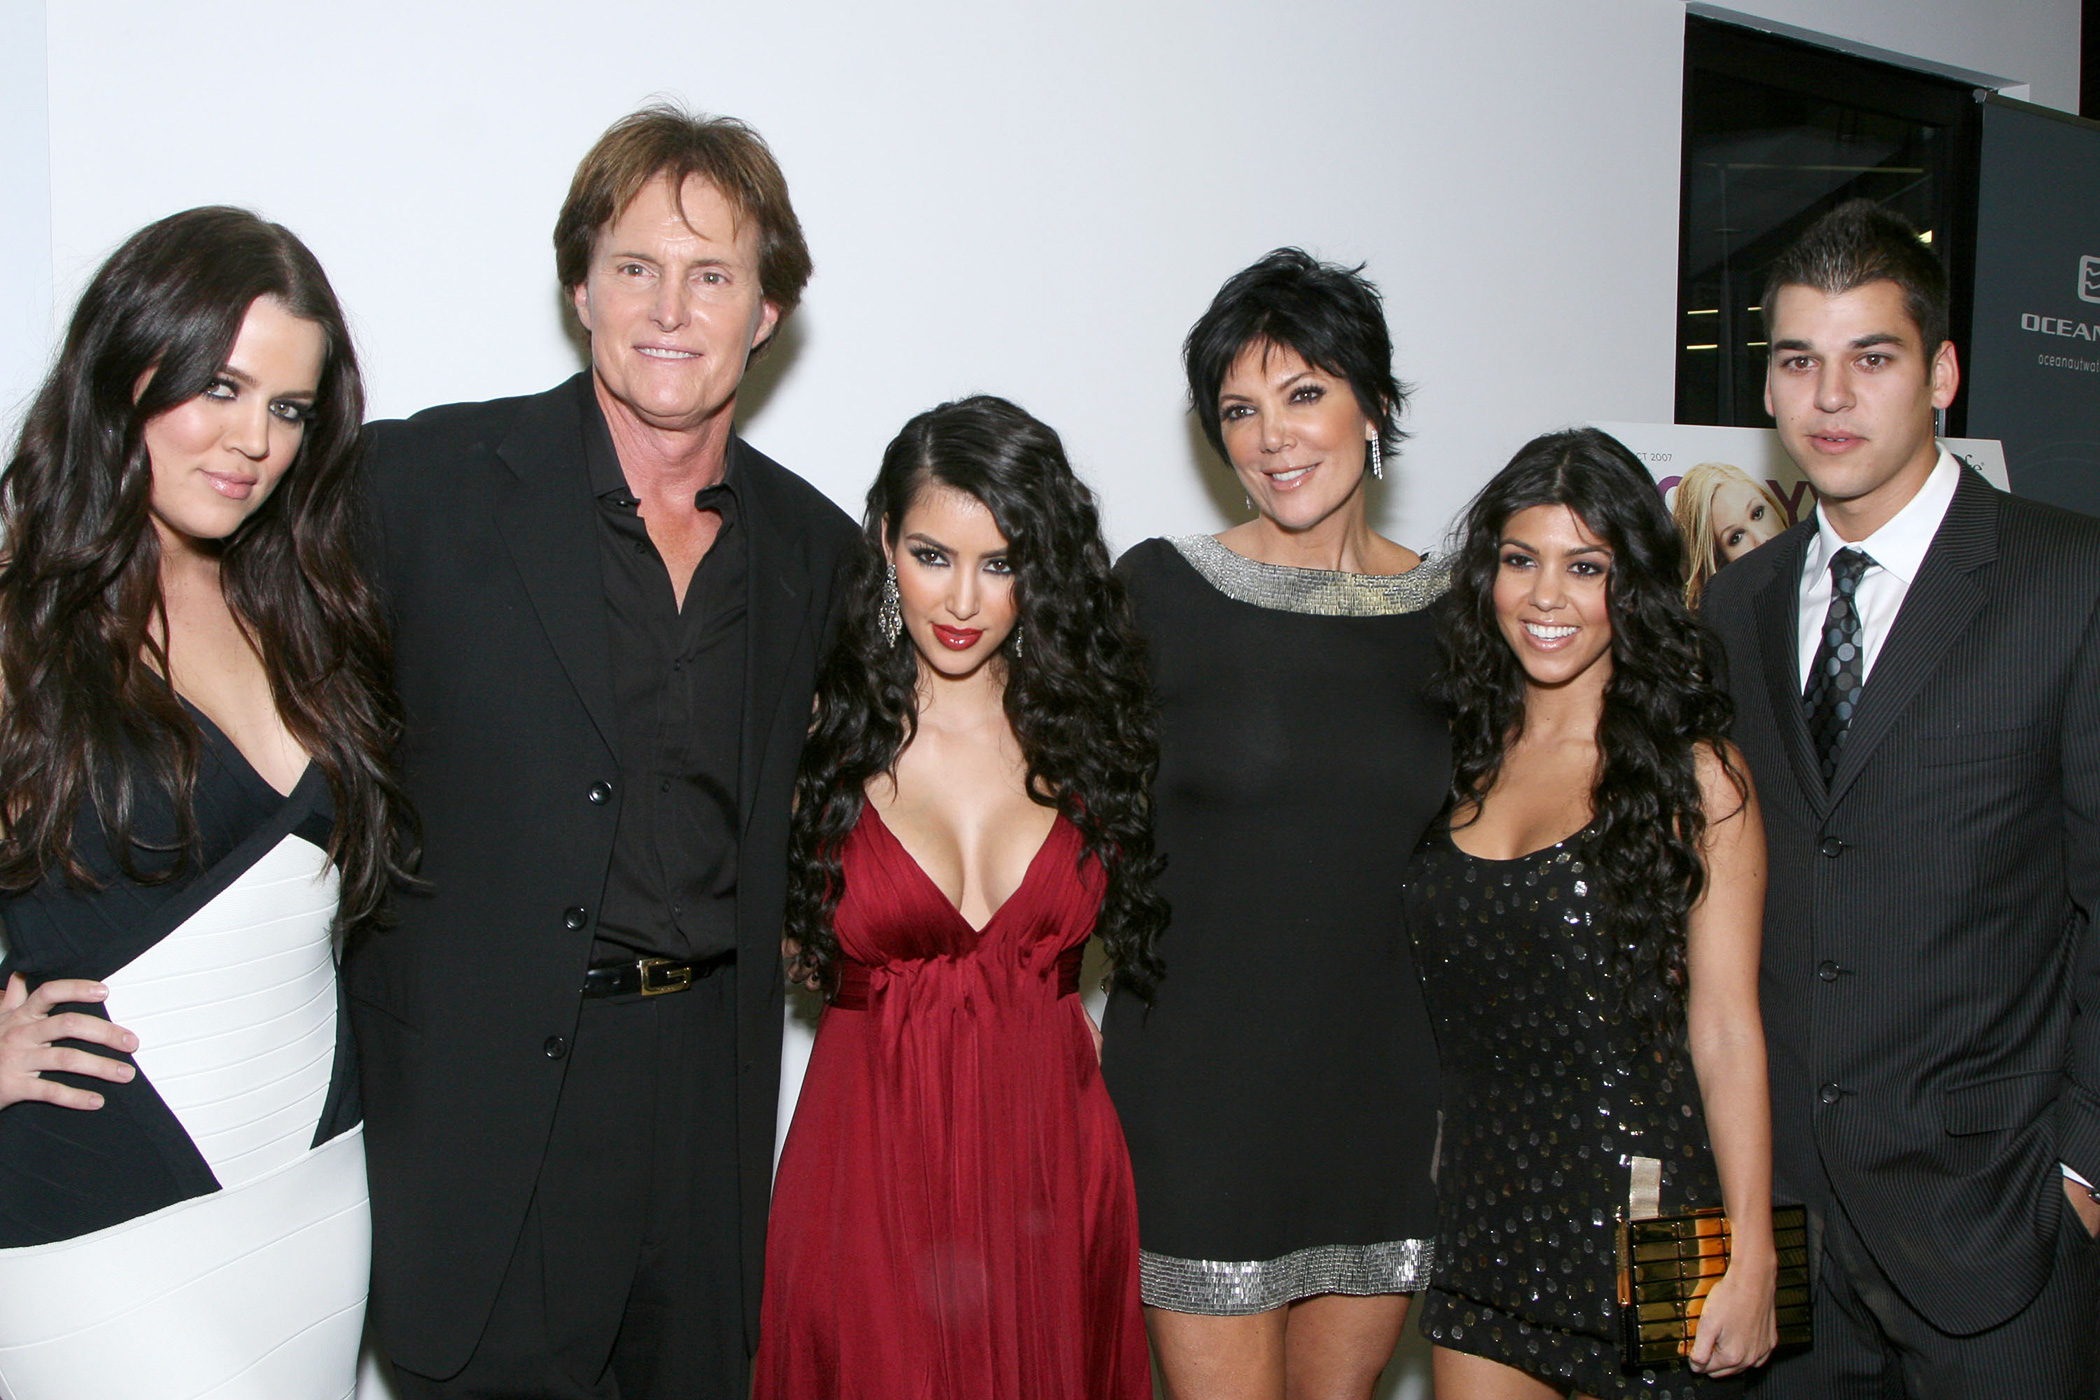 Top 9 at 9: Kris and Bruce Jenner call it quits, Kate Middleton asks for discount while shopping